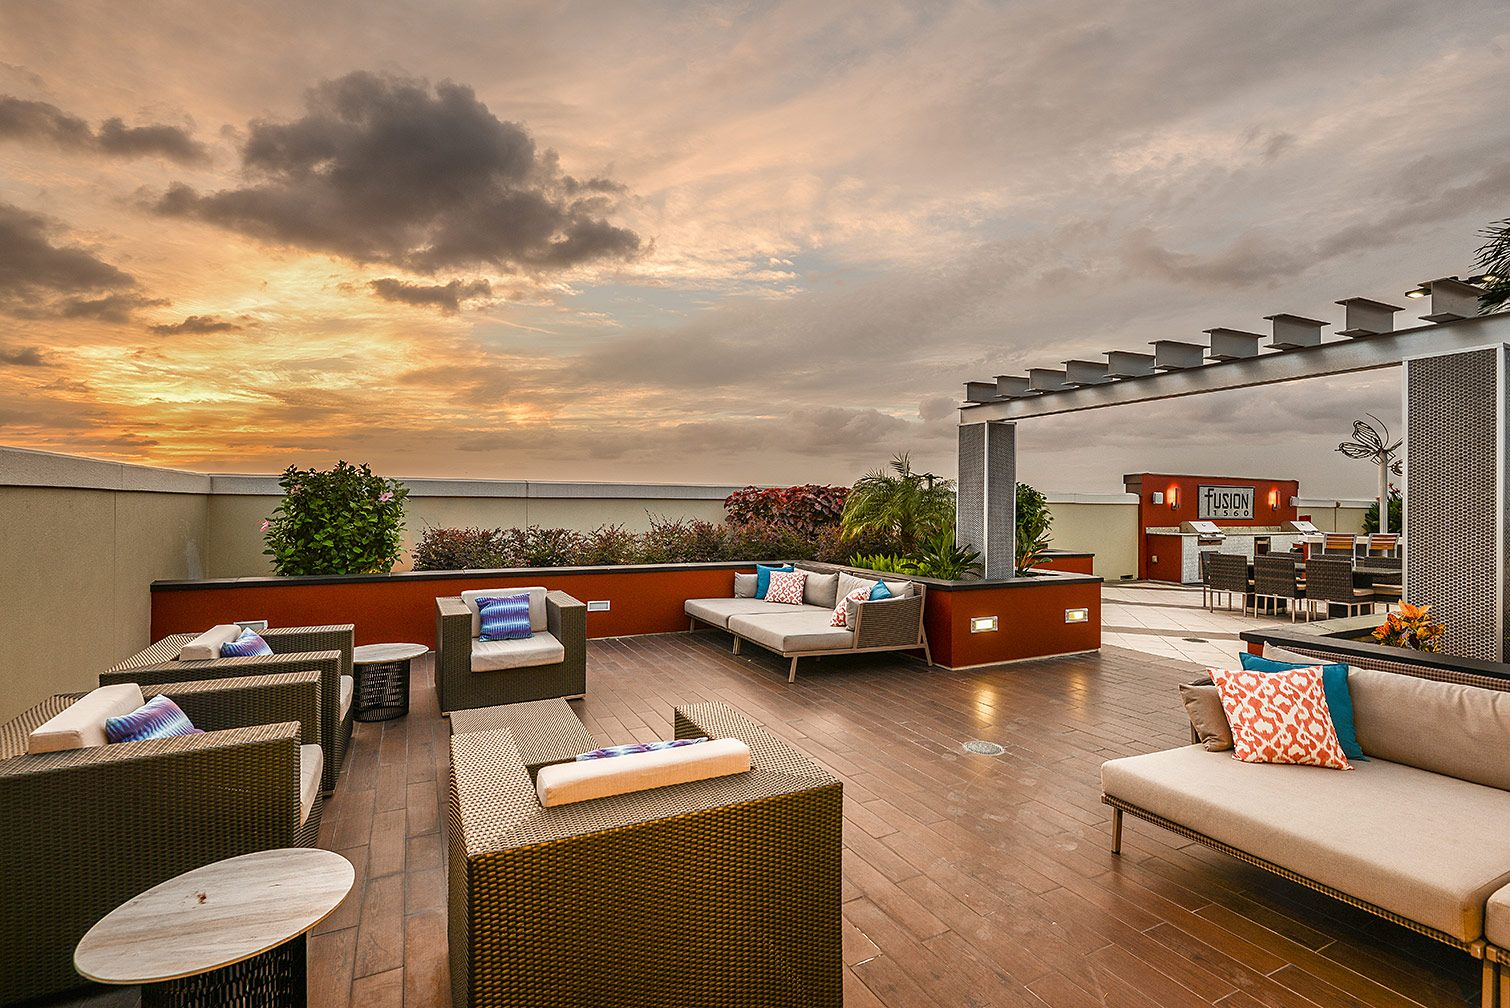 rooftop seating area with tables and grilling area